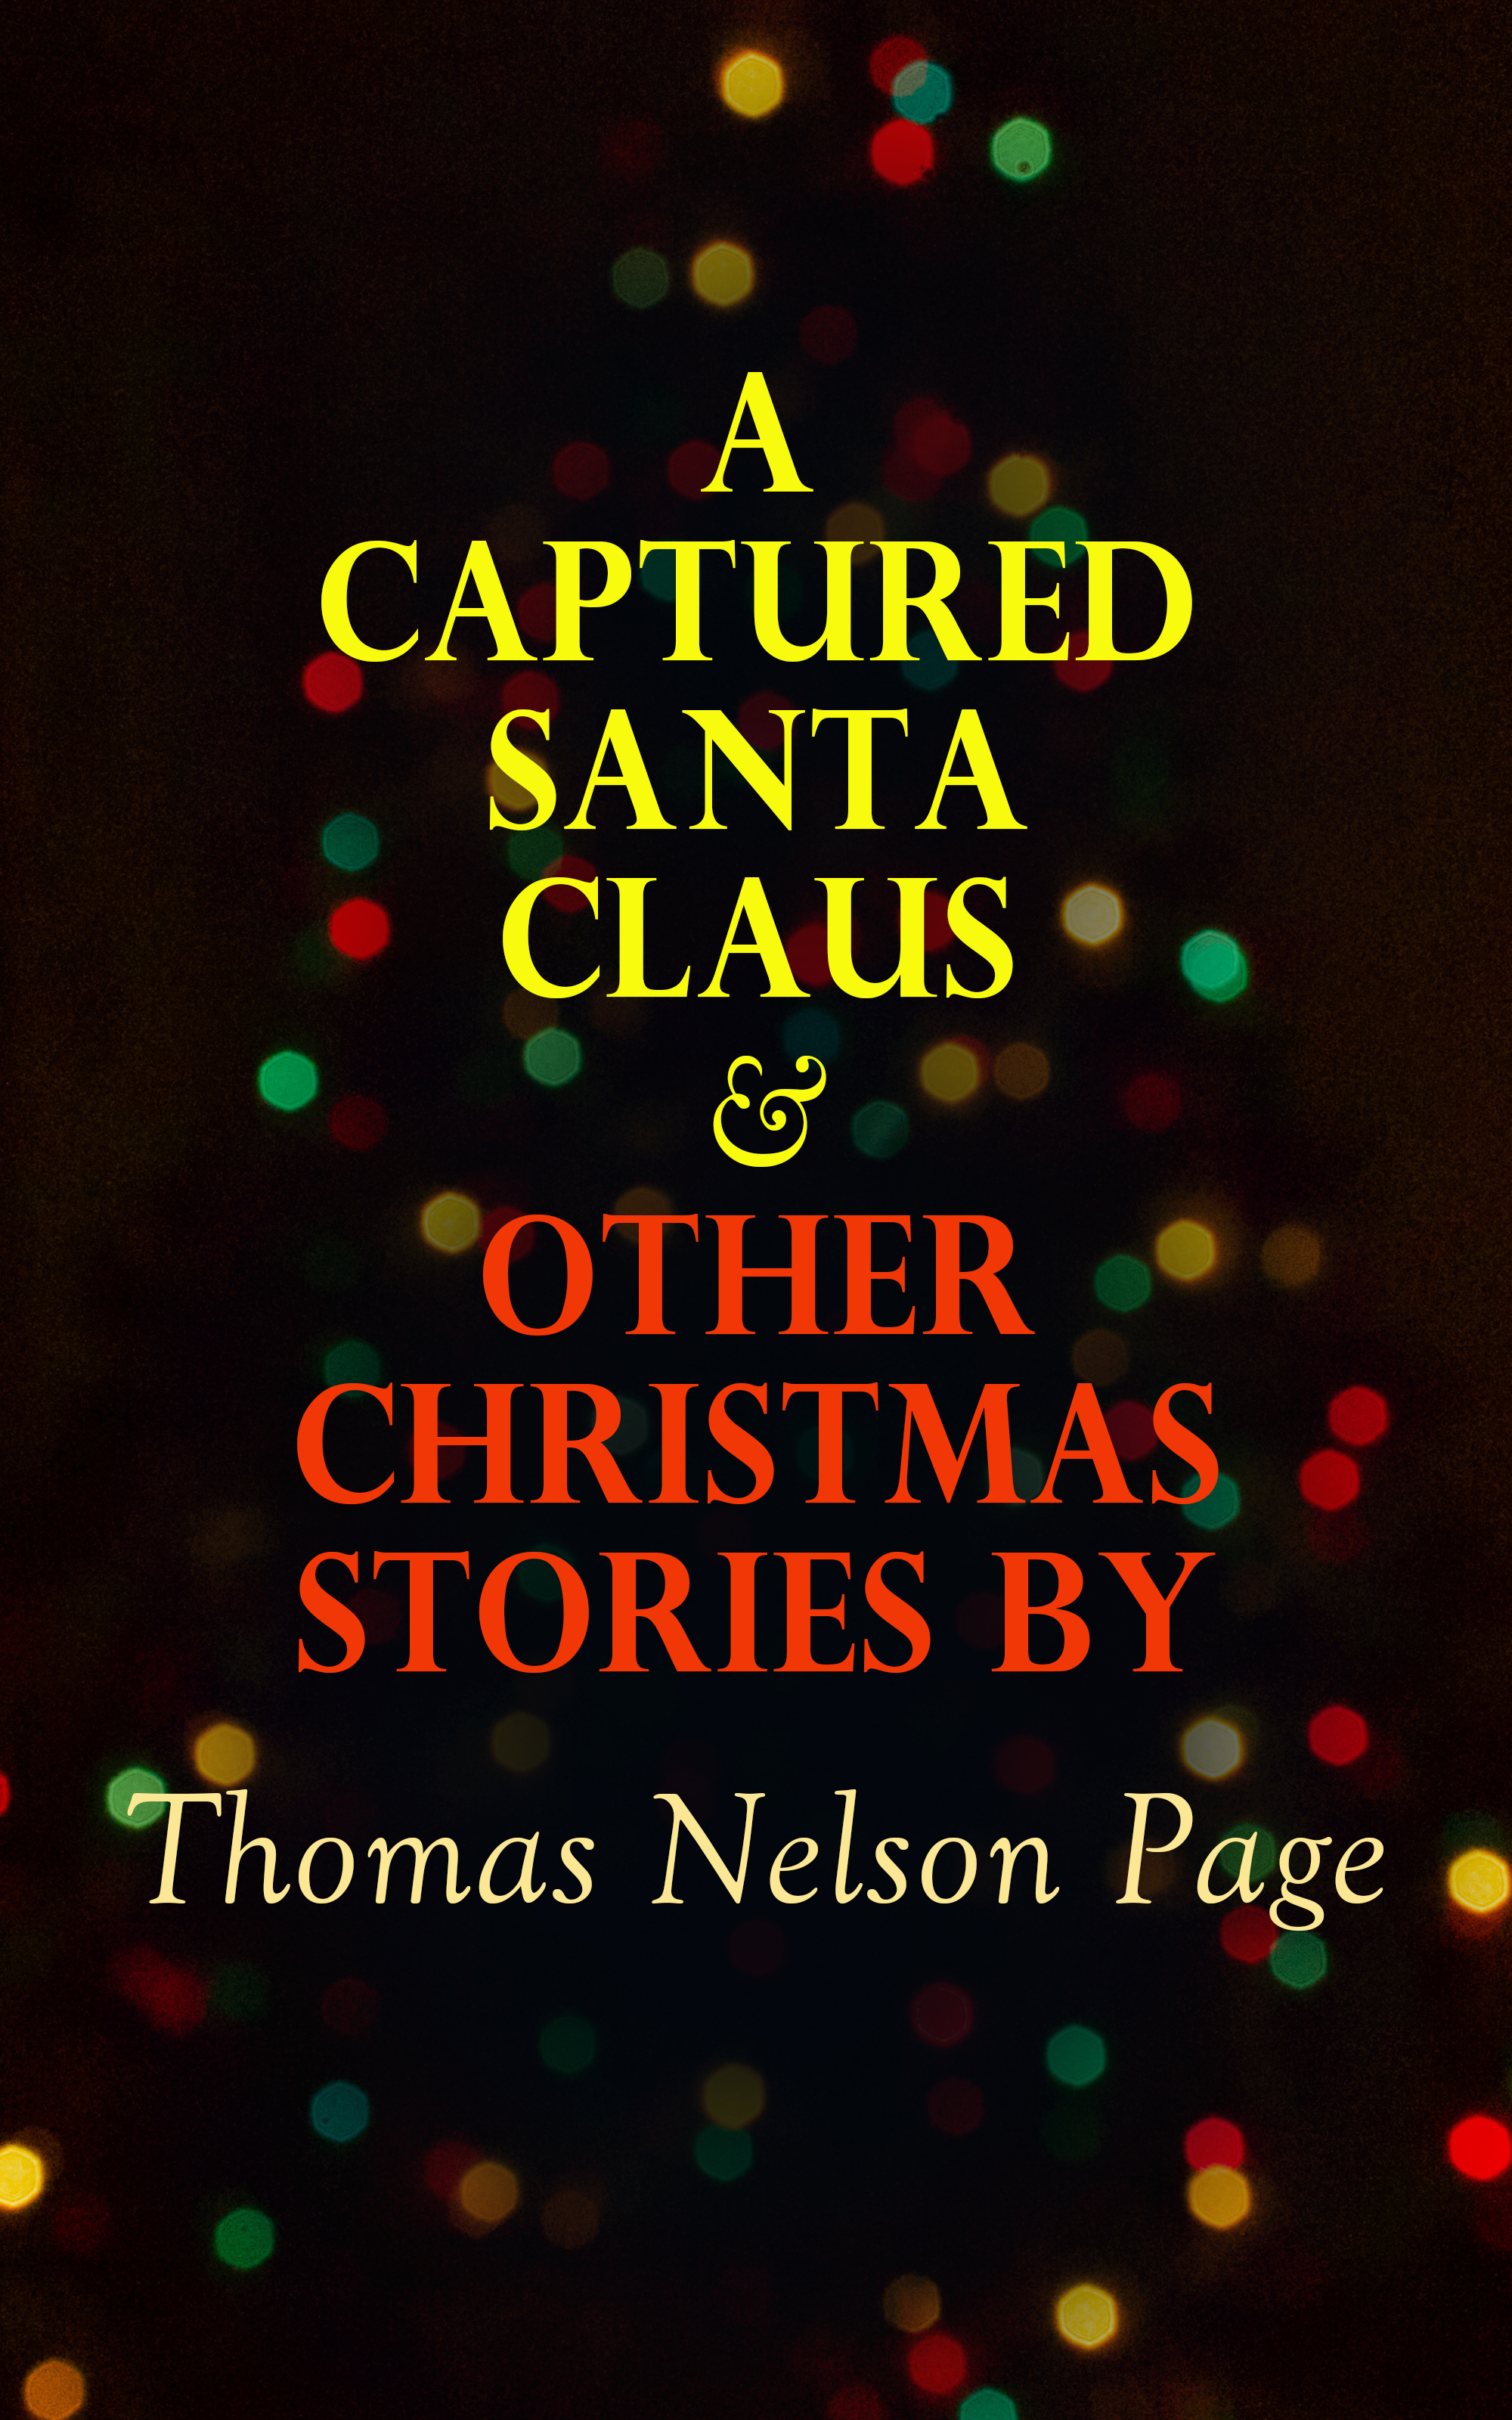 Thomas Nelson Page A Captured Santa Claus & Other Christmas Stories by Thomas Nelson Page sitemap html page 2 page 7 page 3